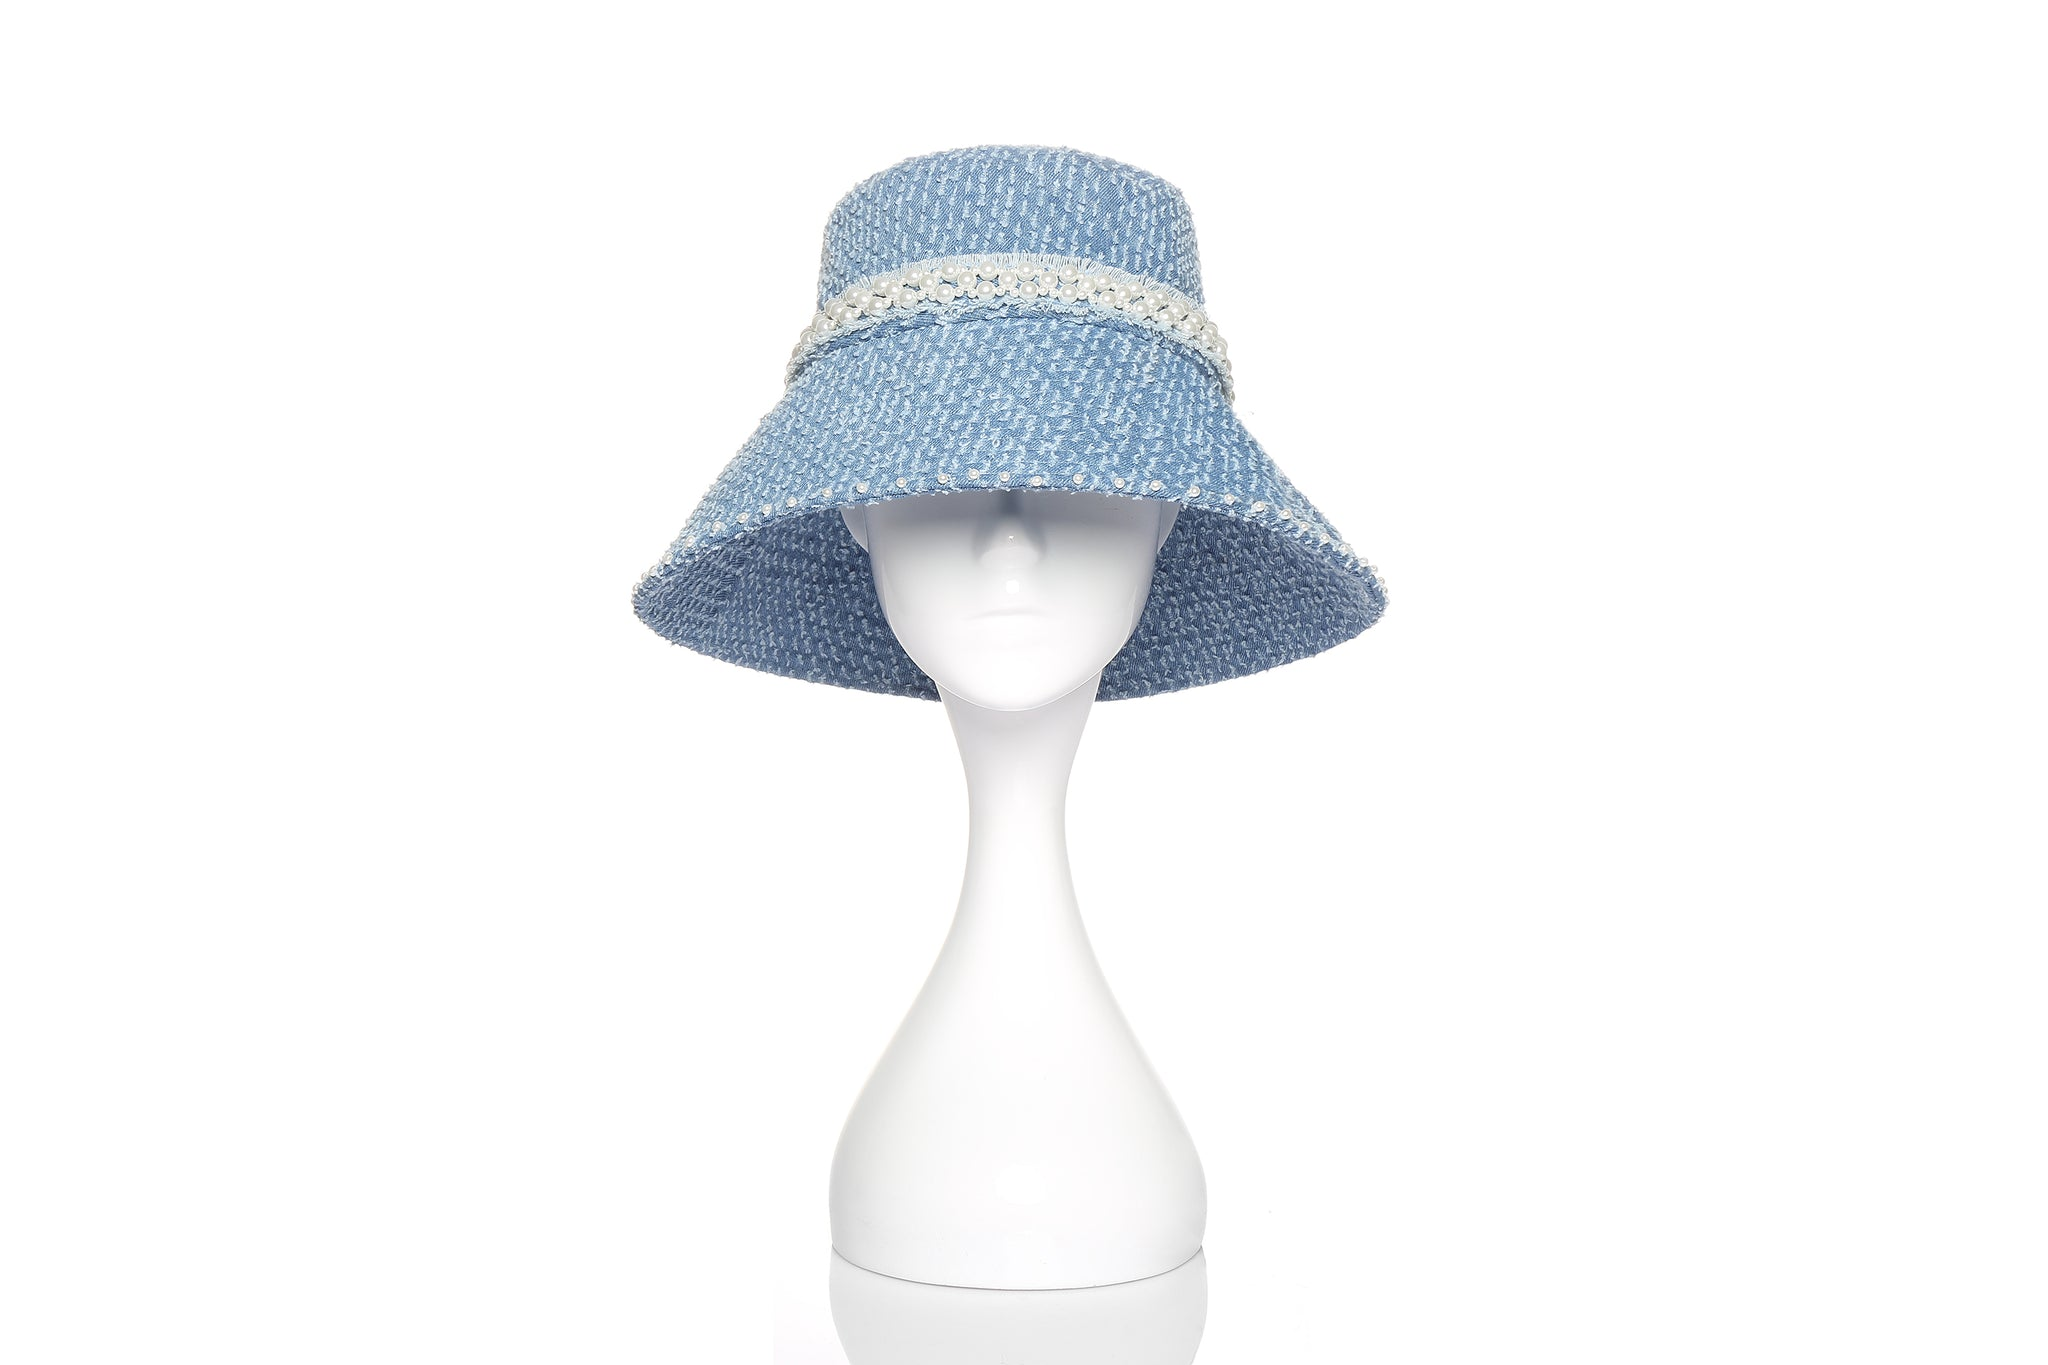 Denim Bucket Hat with Pearl Embellishments, Long Brim, Light Blue